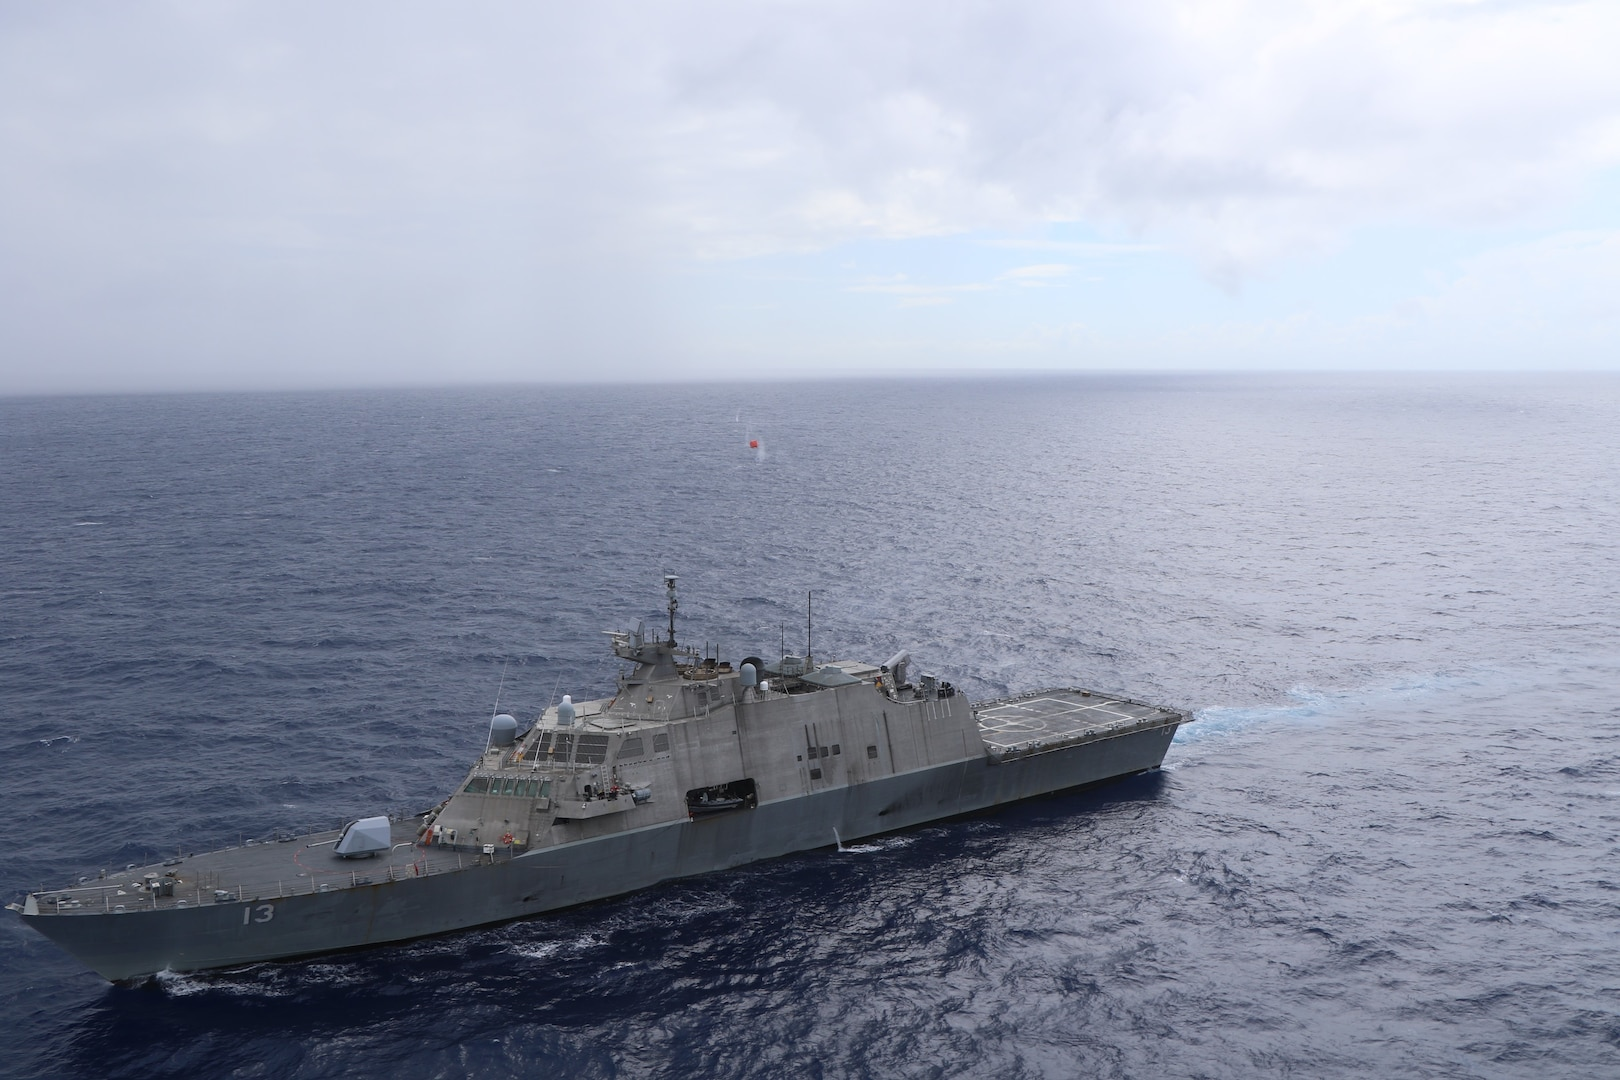 USS Wichita (LCS 13) fires at the floating training target during the bi-lateral live fire exercise with the Jamaica Defense Force Coast Guard patrol vessel HMJS Cornwall, April 9, 202